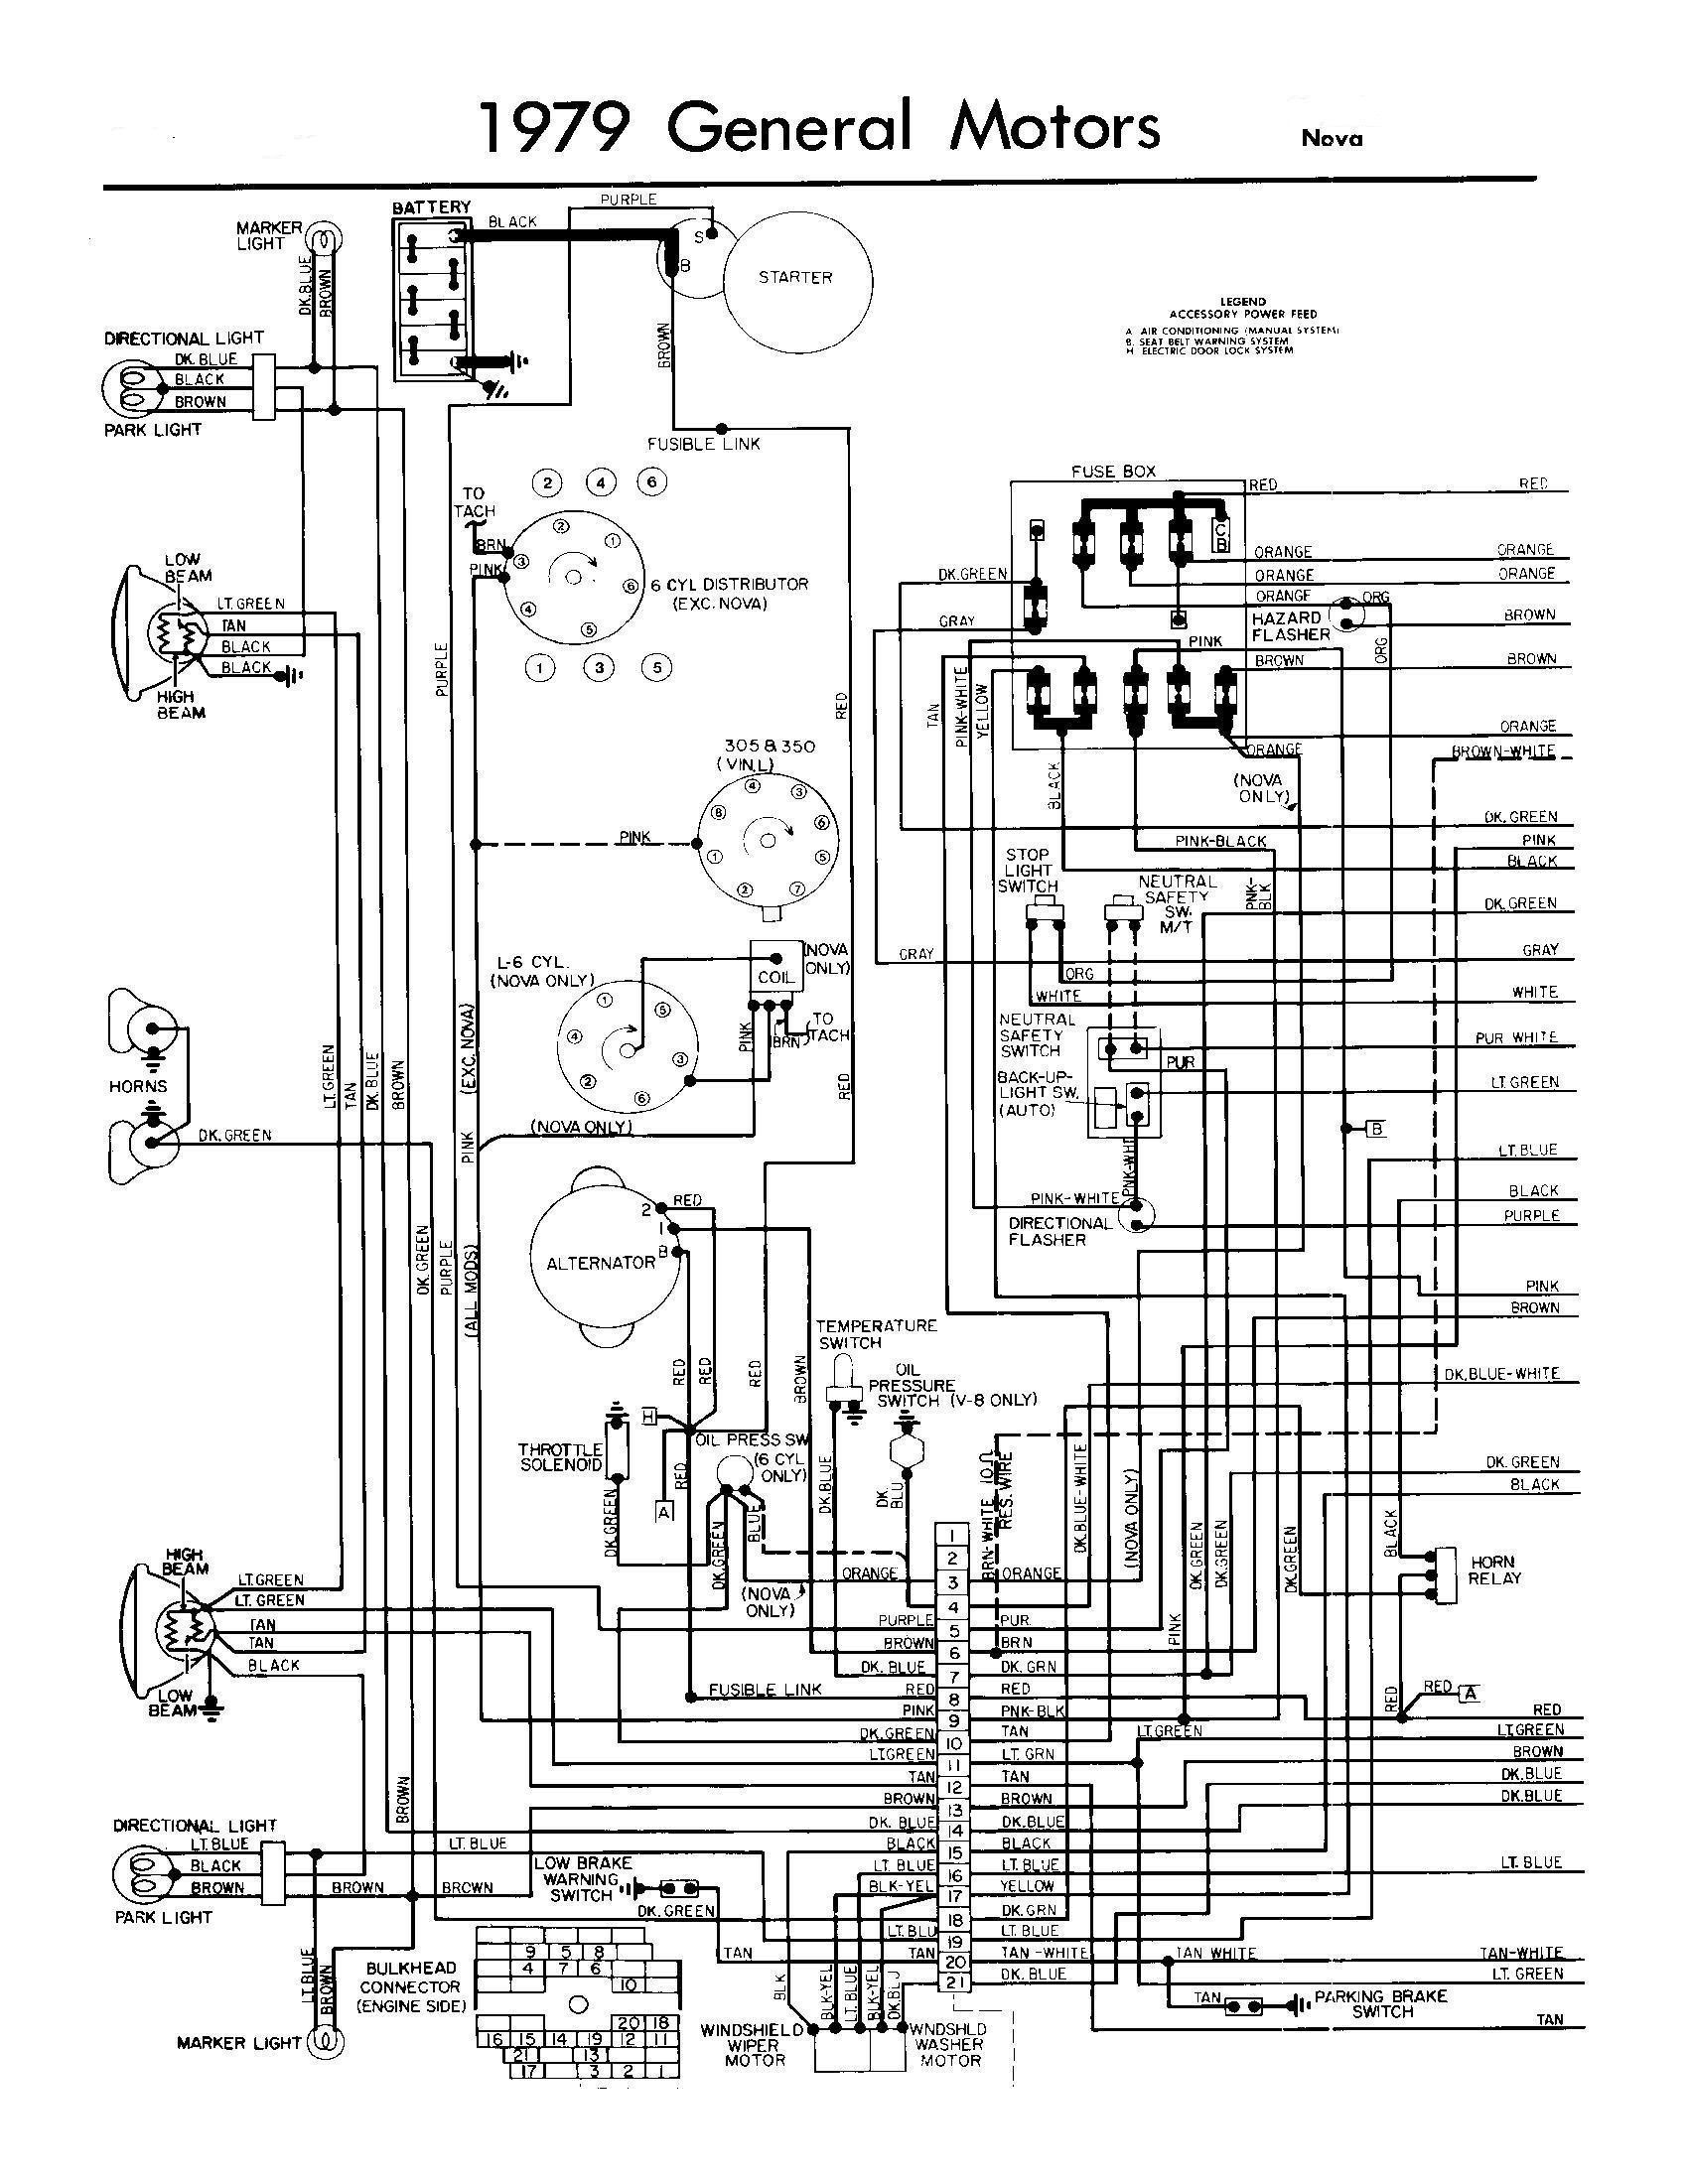 1976 Jeep Wiring Diagram Bookmark About 75 Series Landcruiser Headlight Trans Am Fe Diagrams Rh 51 Bildhauer Schaeffler De Cj5 Wiper Motor Cj7